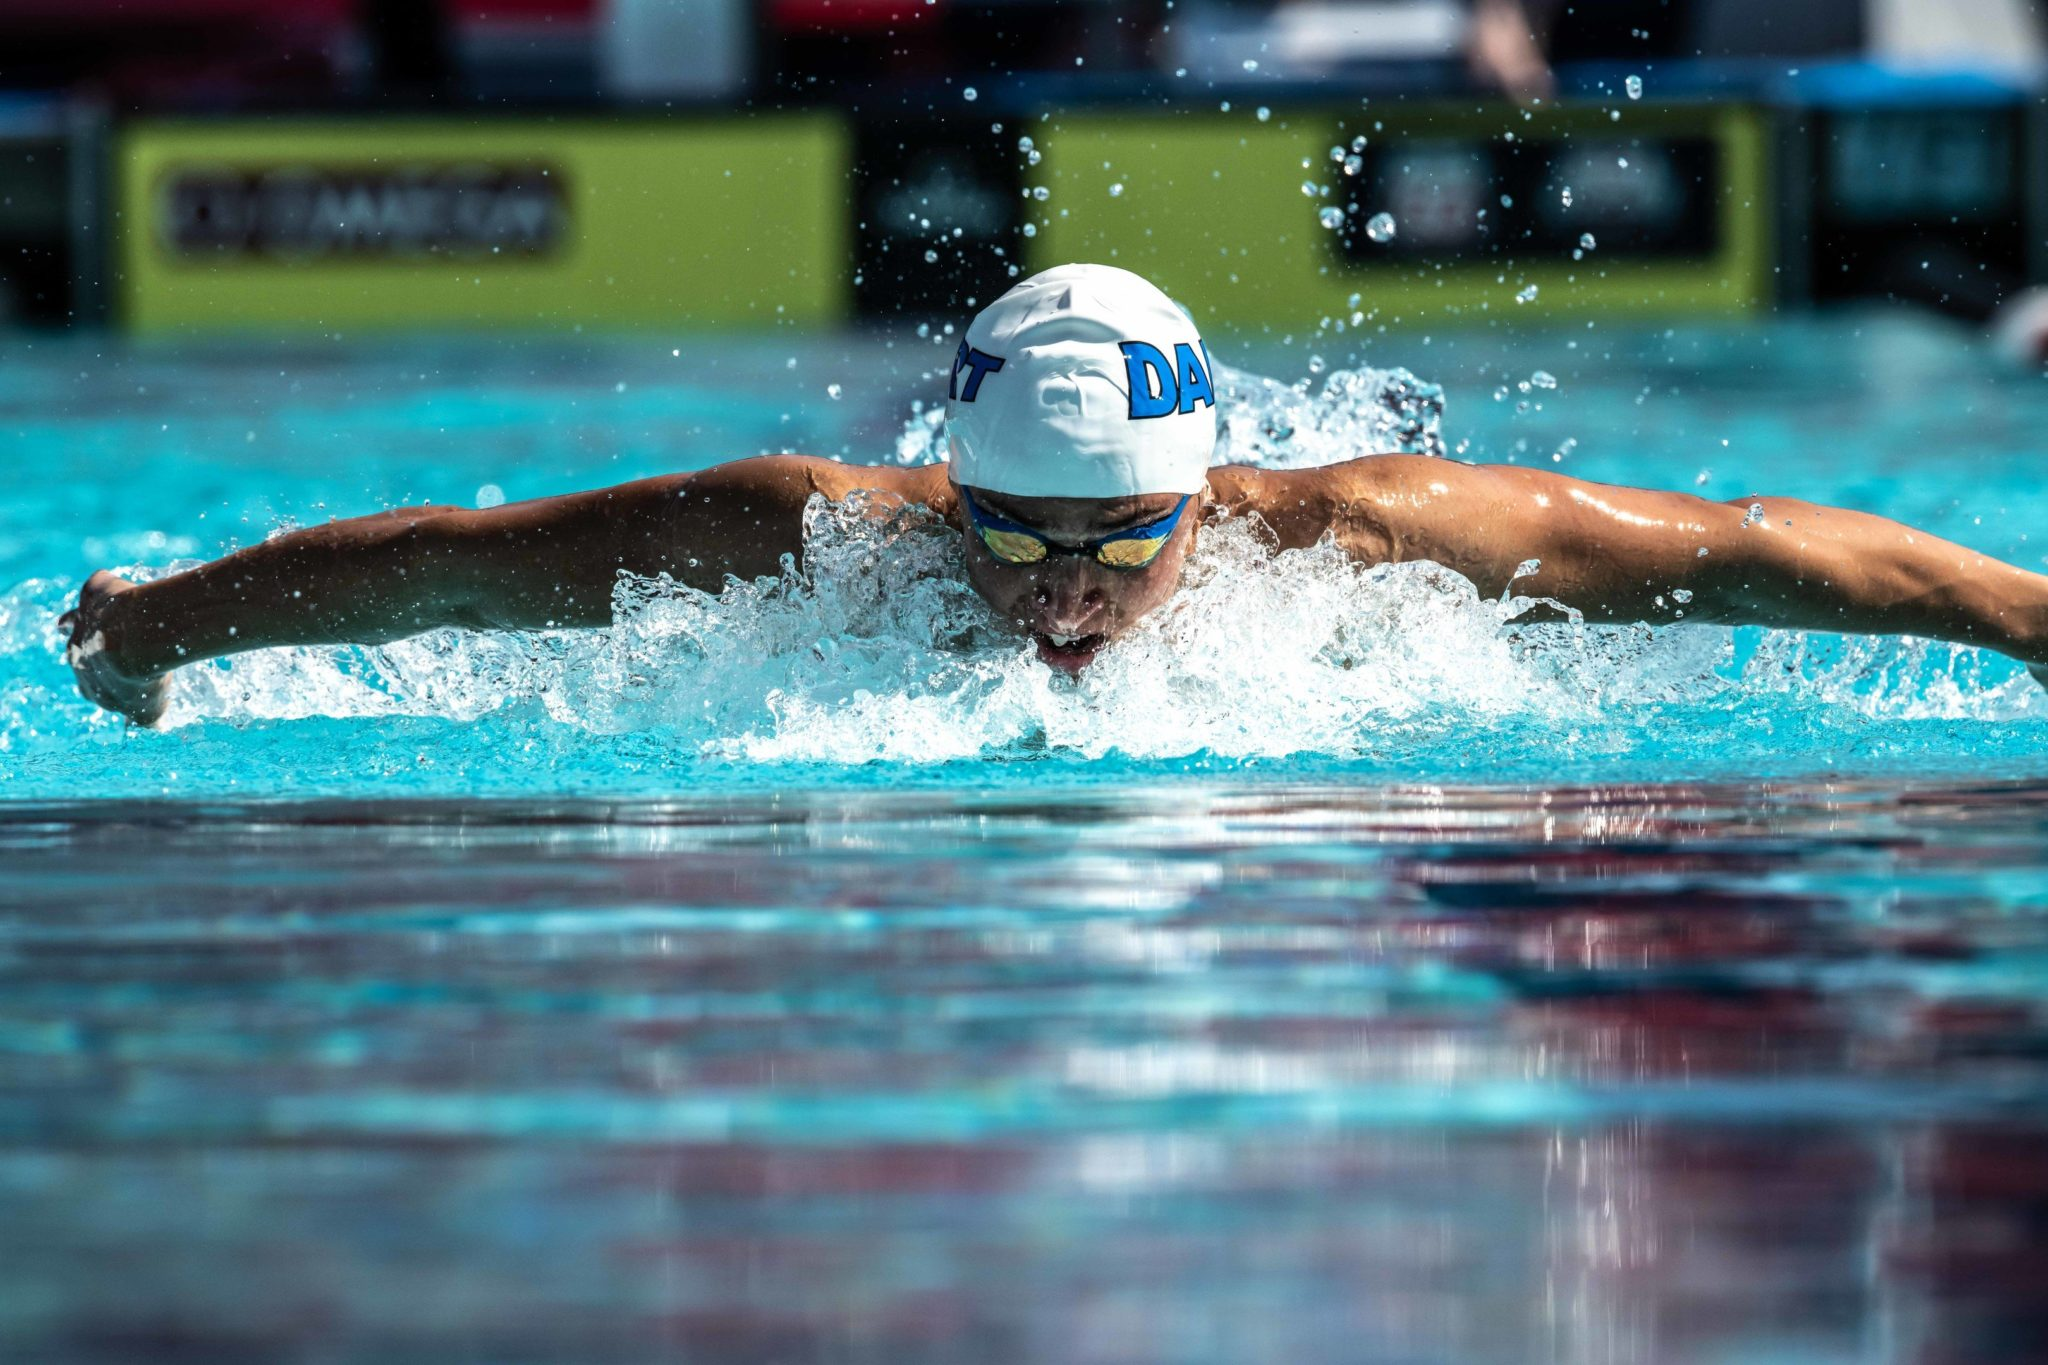 Clovis PSS Psych Sheets Reveal A Quiet Showing